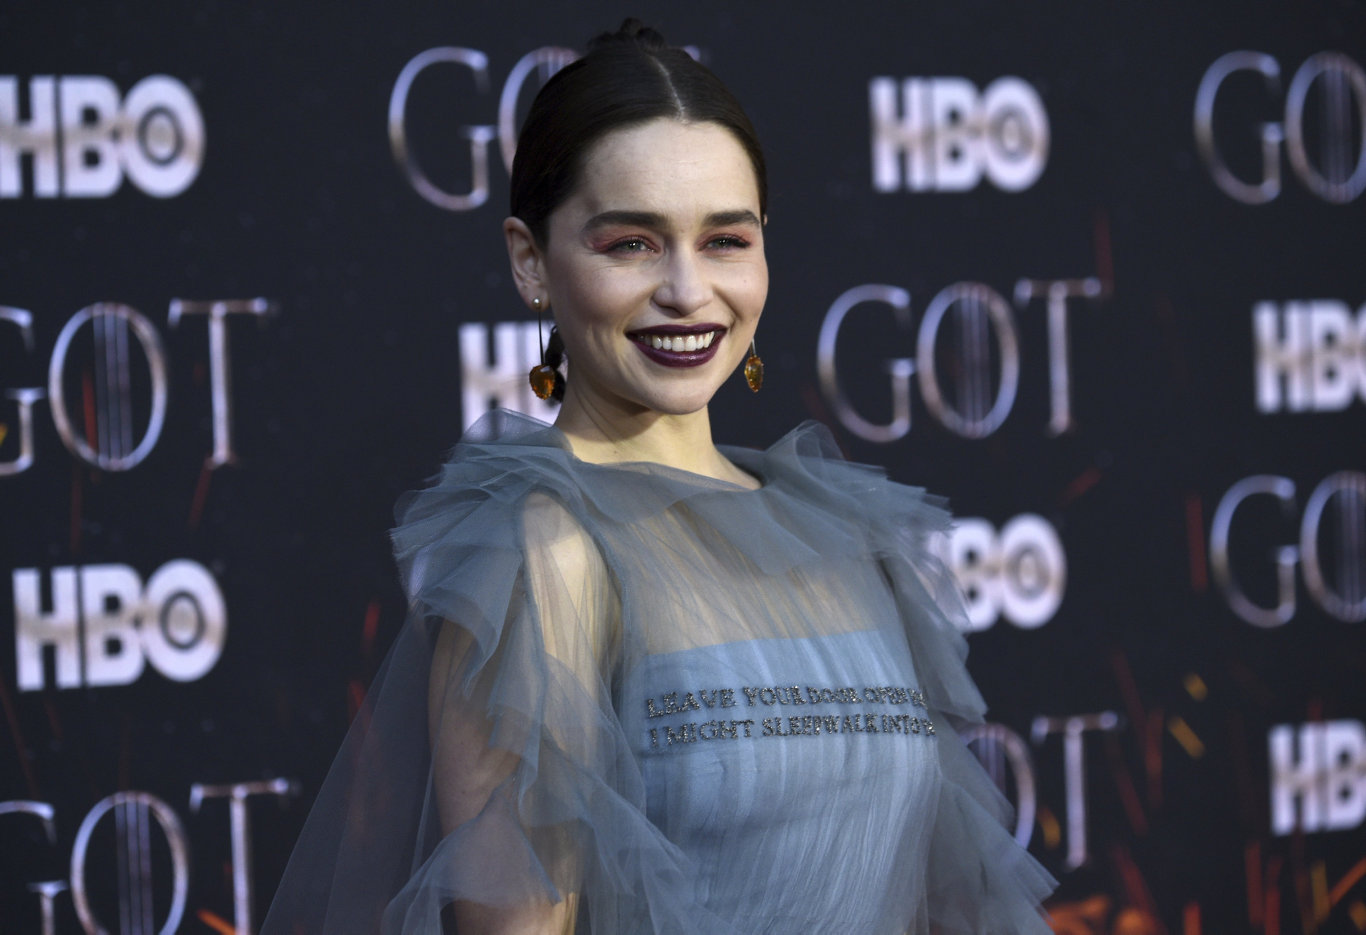 British actor Emilia Clarke wore Valentino to the final season premiere of Game of Thrones in New York today.